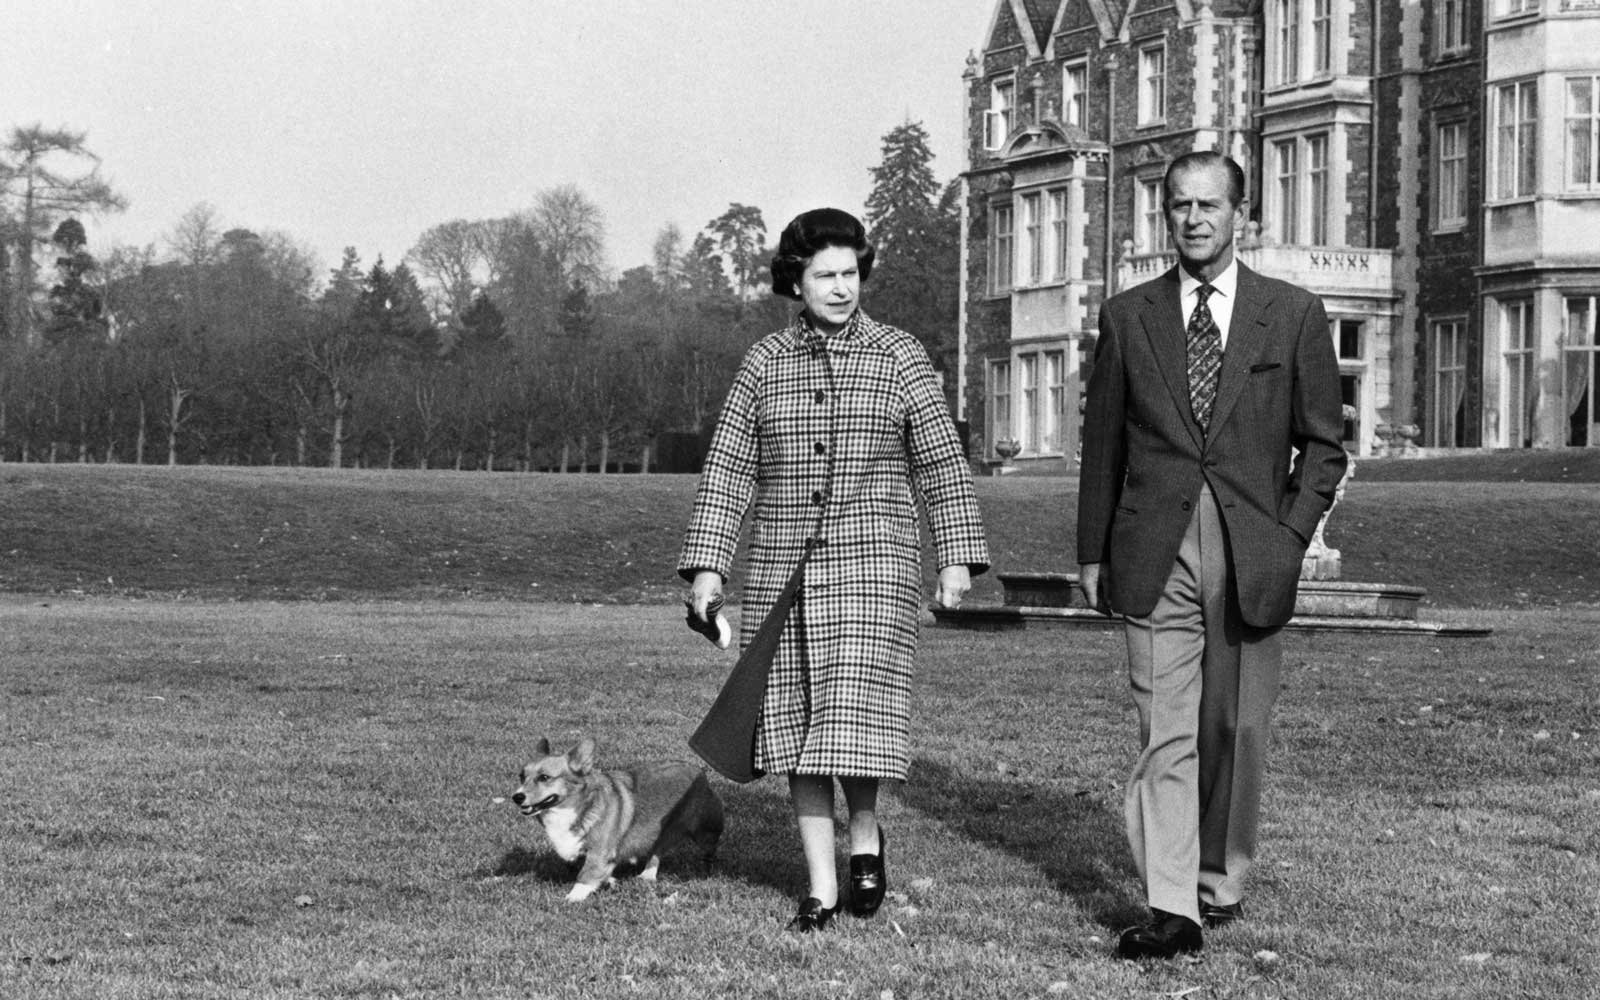 With the Duke of Edinburgh, 1982